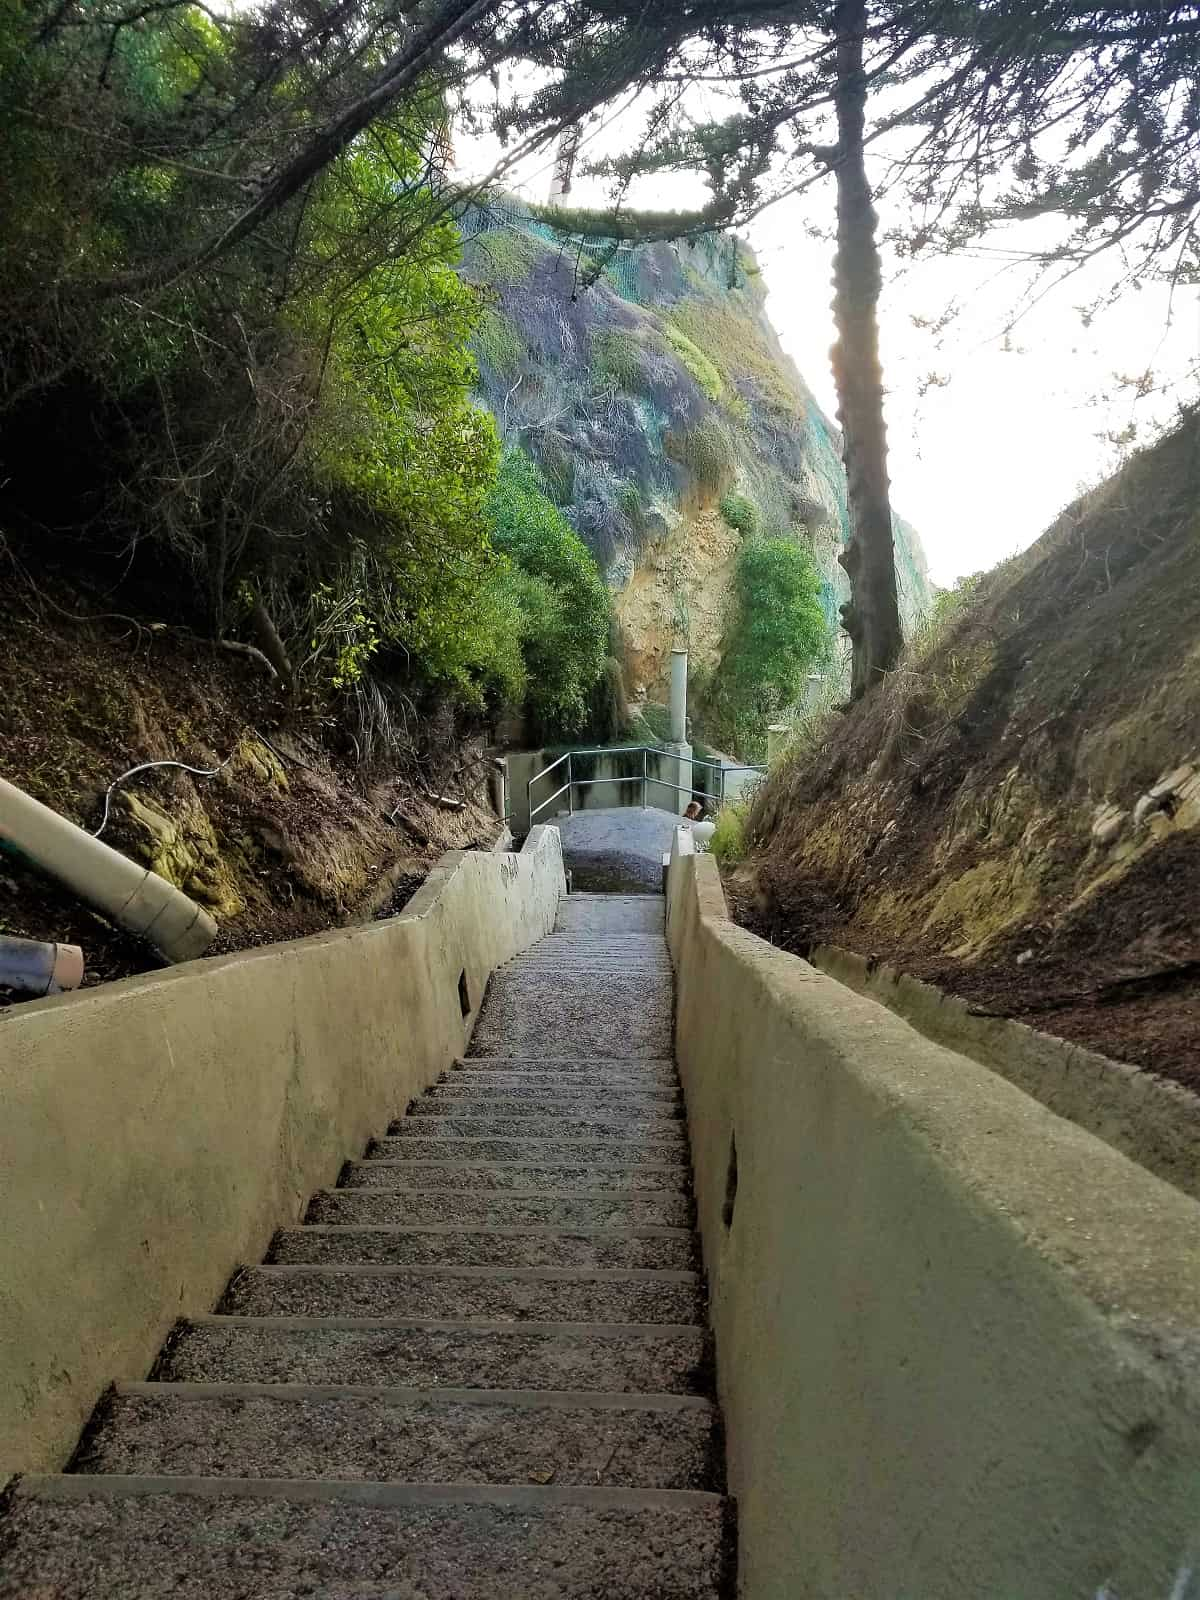 Entrance to 1,000 Steps Beach in Santa Barbara, California